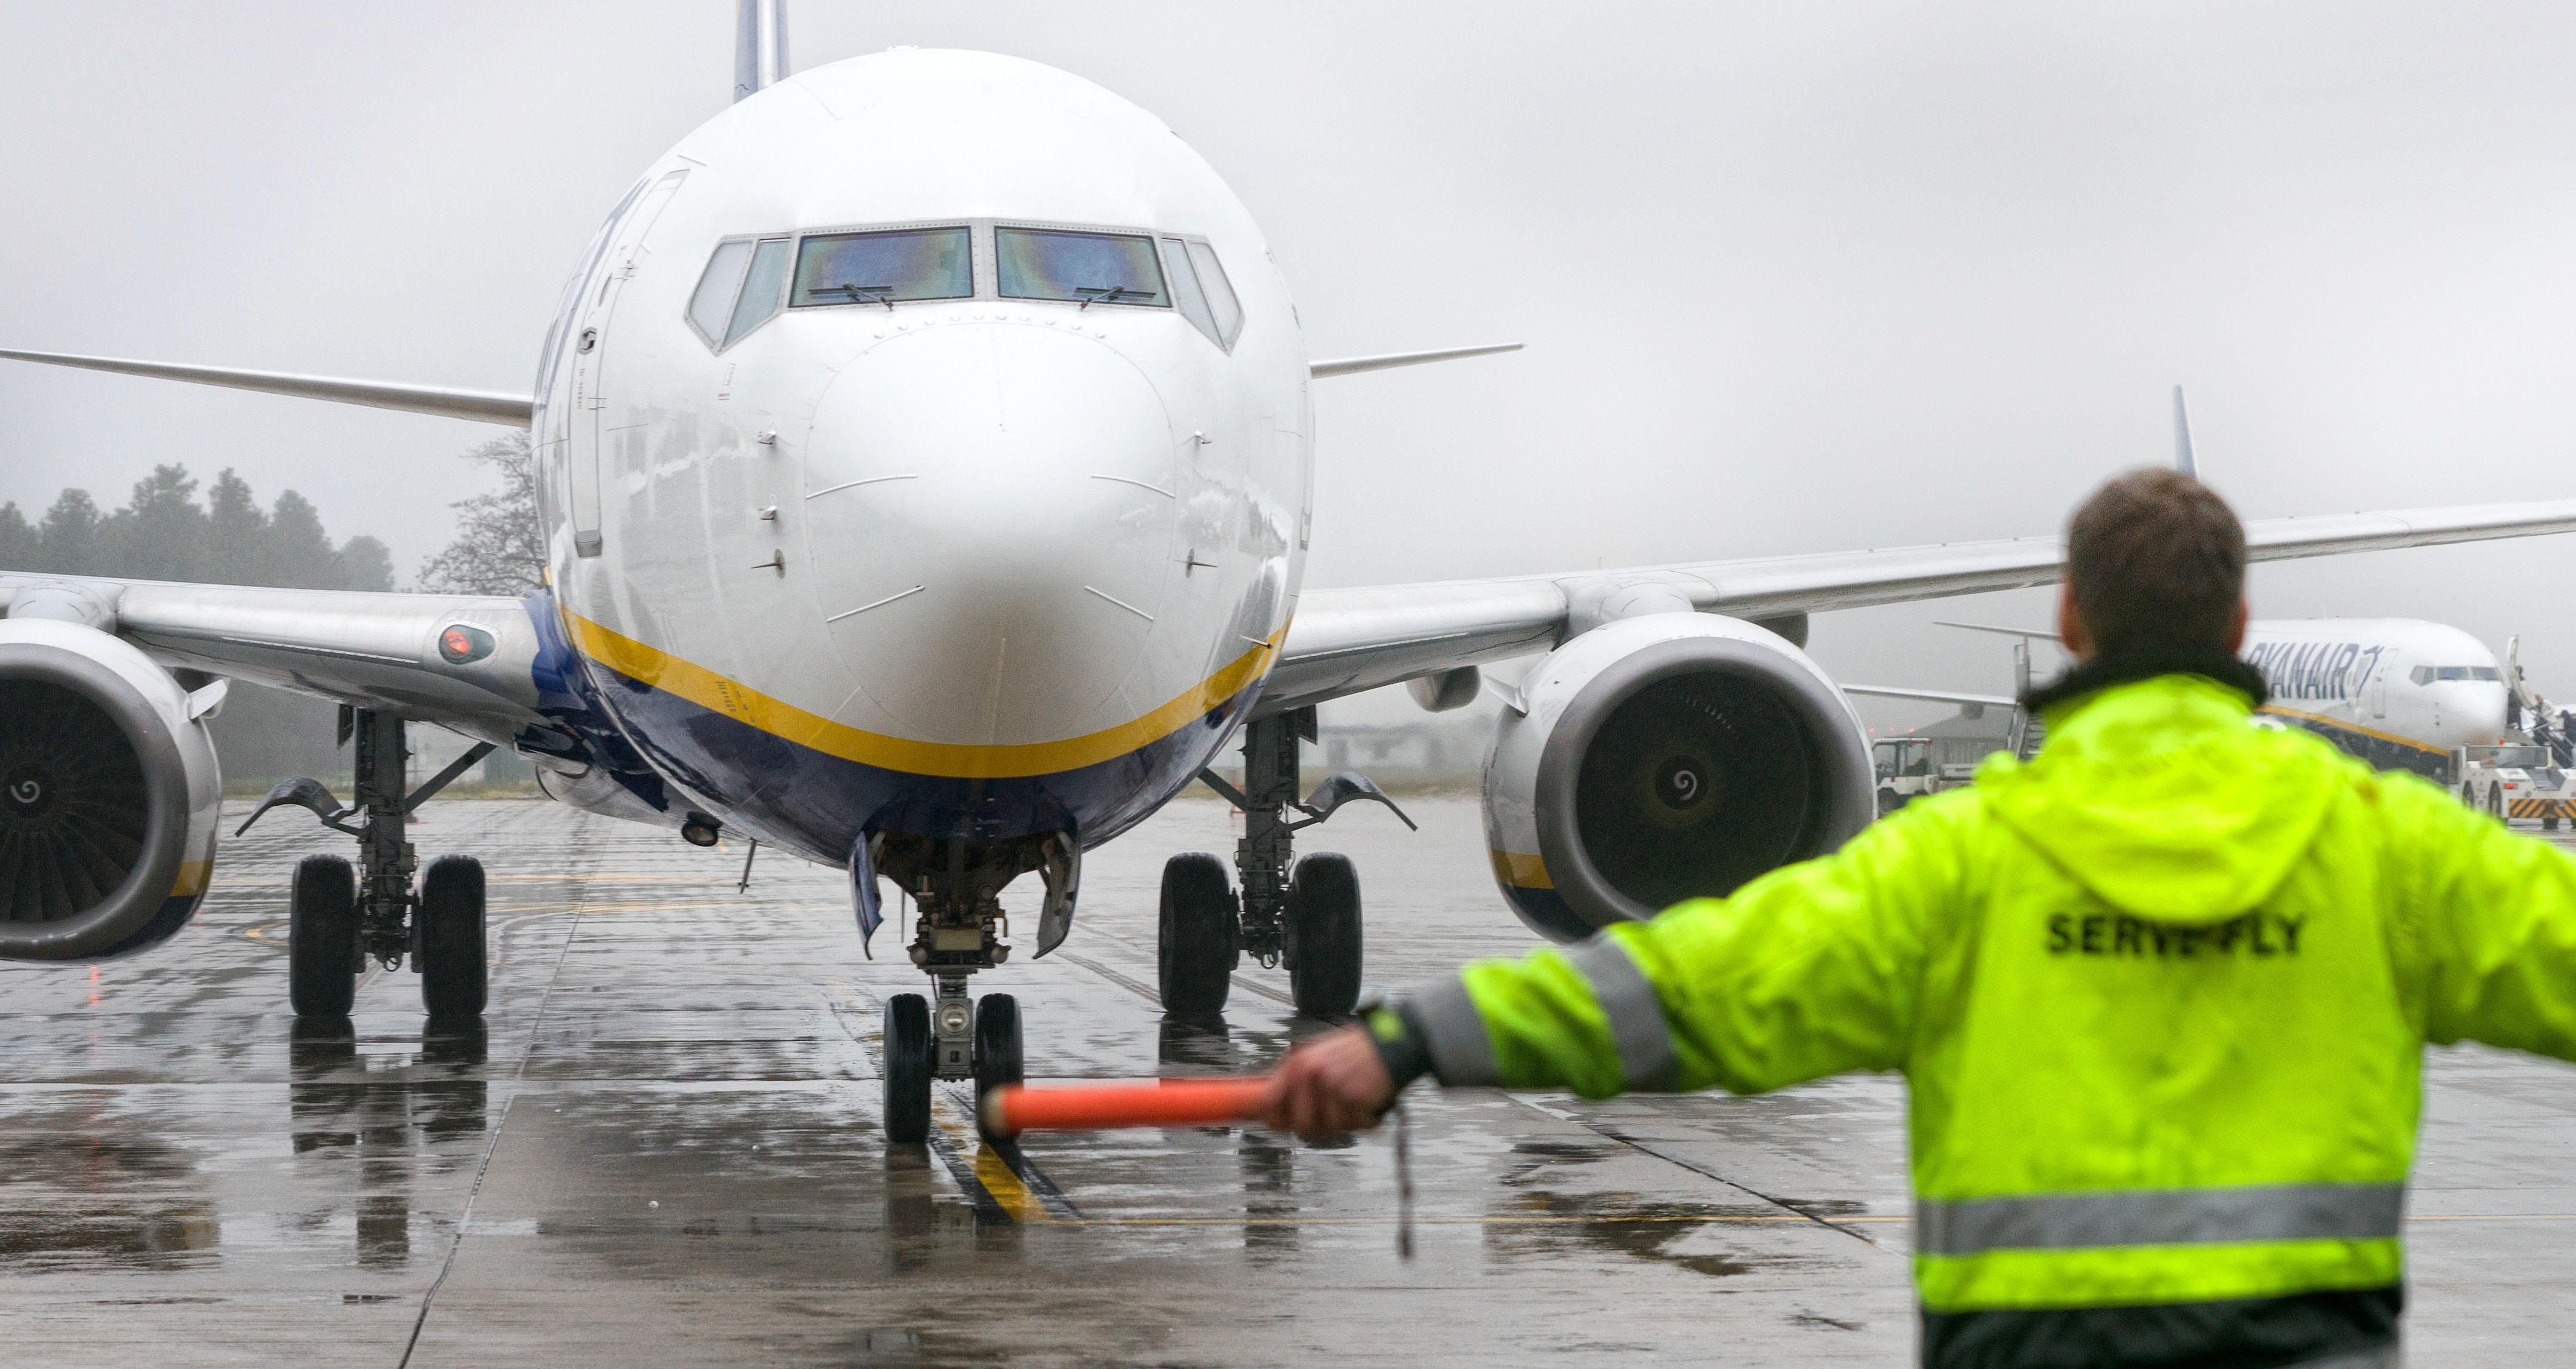 An employee helps a passenger aircrafts of the Irish low-cost airline company Ryanair to park on the tarmac of the airport in Weeze, western Germany on December 22, 2017.         Passengers travelling with Ryanair in Germany on December 22, saw little disruption from a four-hour strike called by a pilots' union, with most flights leaving as scheduled, and only some delays. Germany's powerful Cockpit union had asked Ryanair pilots to walk off the job from 5-9am (0400-0800 GMT) in a battle for recognition from the Irish no-frills carrier whose workers have been calling for better pay and conditions across Europe. But the first-ever strike action by Ryanair pilots in the company's 32-year history appeared to have made little impact, with no cancellations reported.                   / AFP PHOTO / dpa / Arnulf Stoffel / Germany OUT        (Photo credit should read ARNULF STOFFEL/AFP/Getty Images)